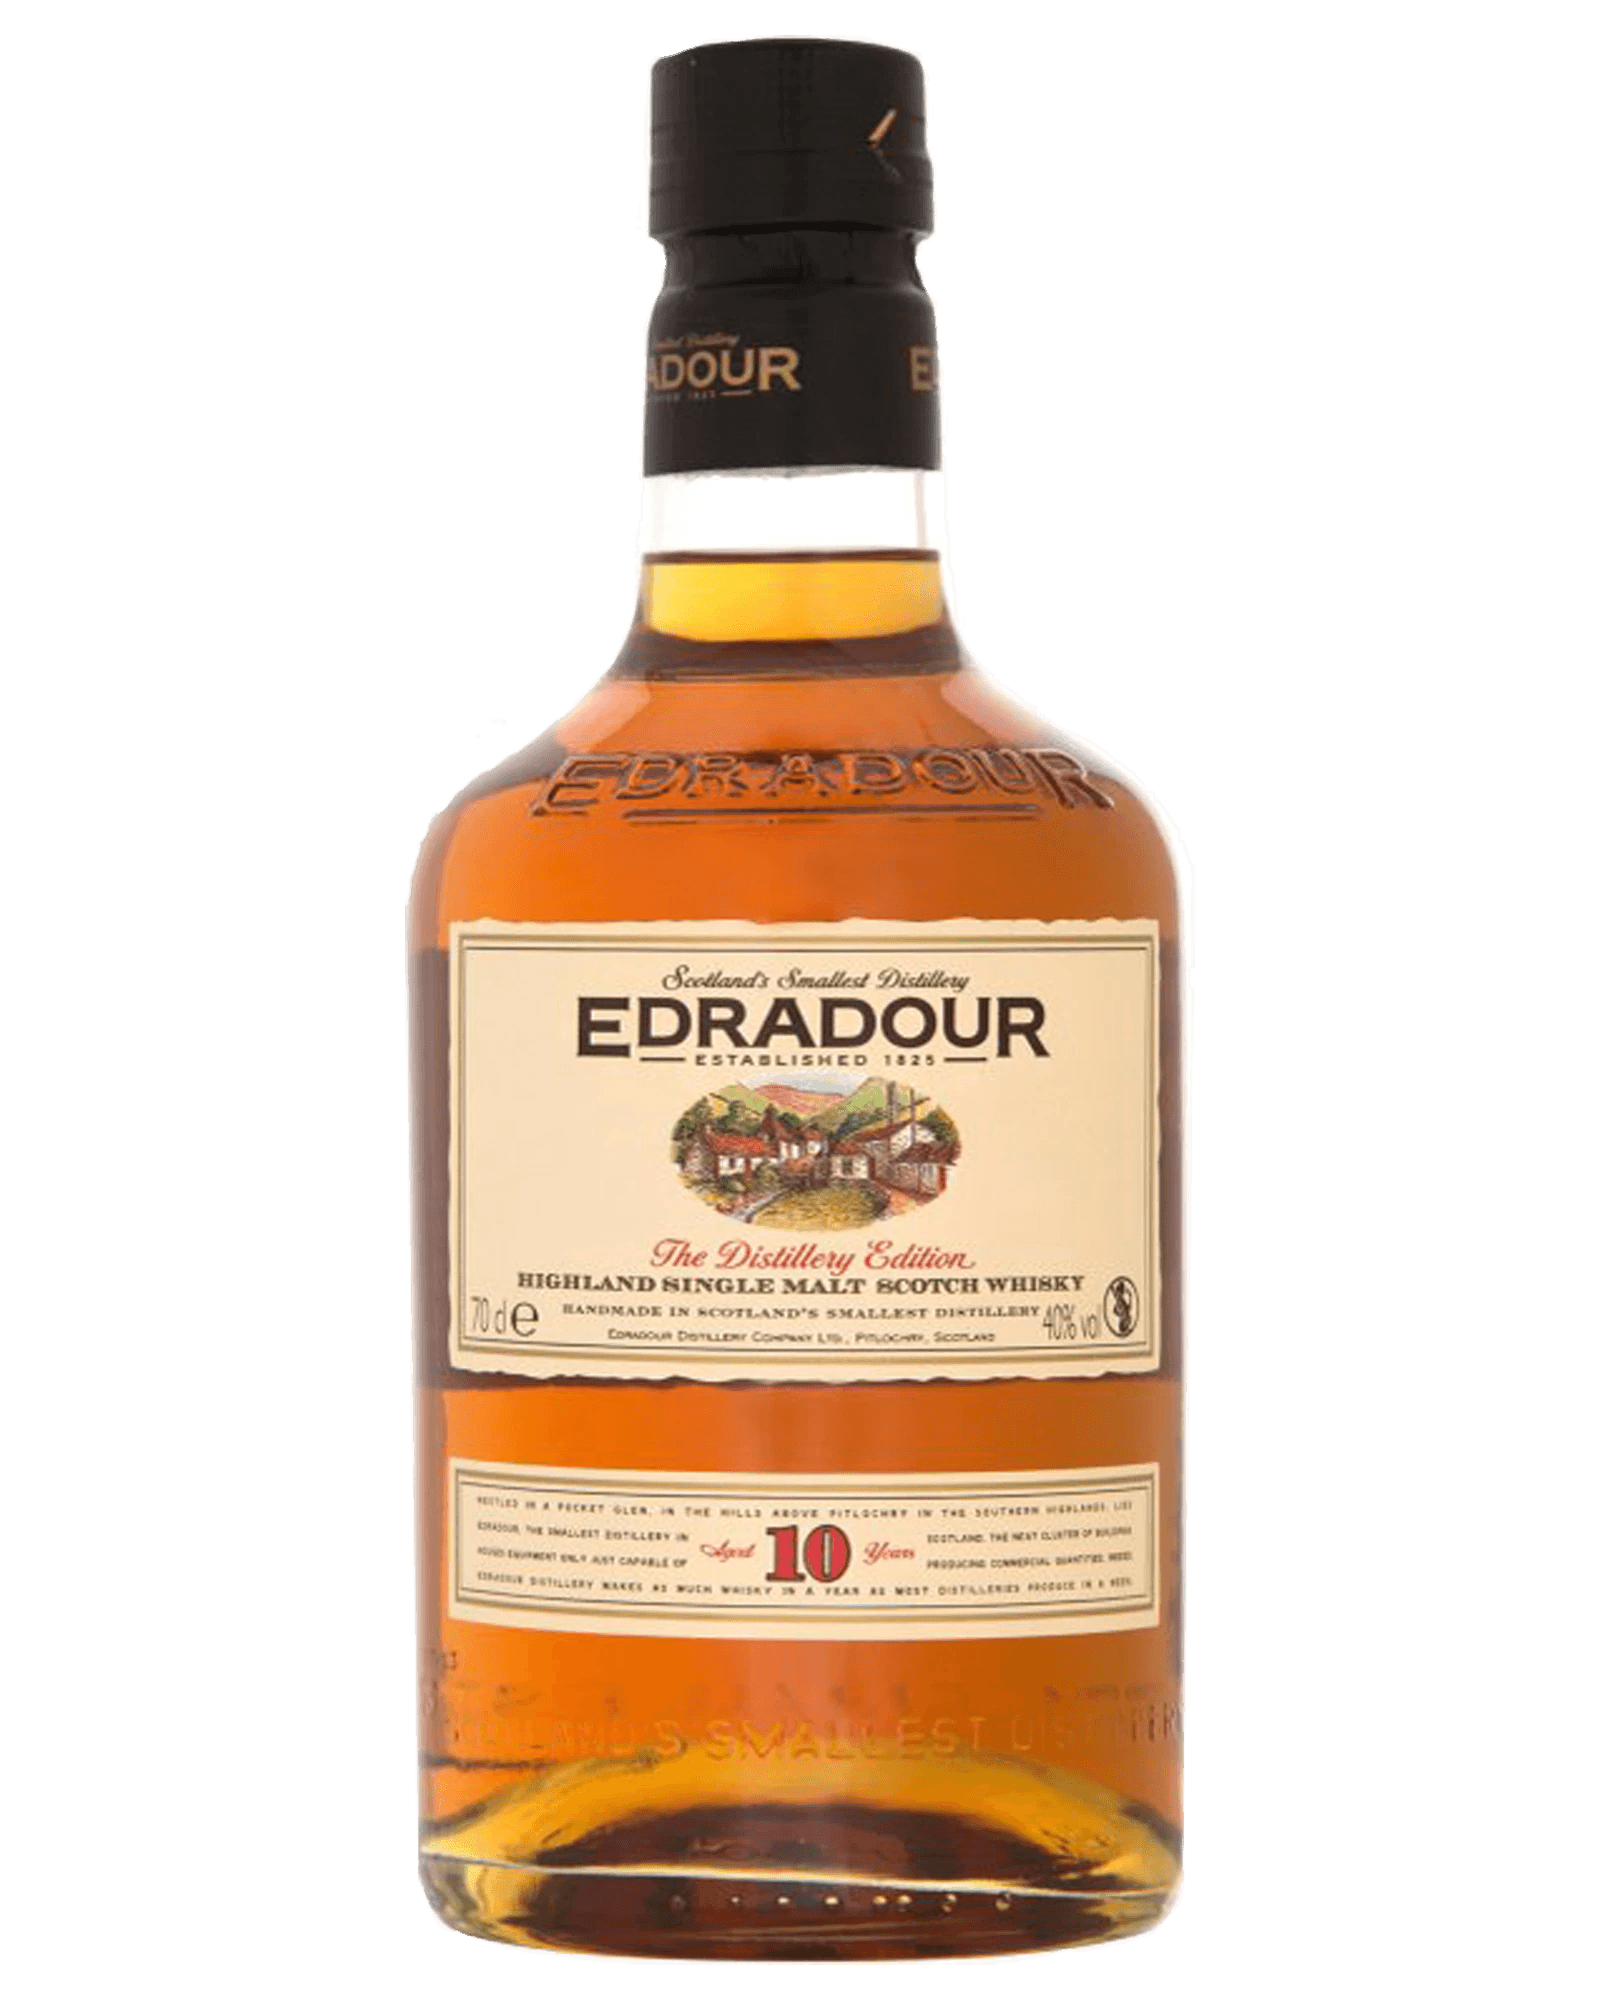 Edradour The Distillery Edition 10 Year Old Single Malt Scotch Whisky (700ml)